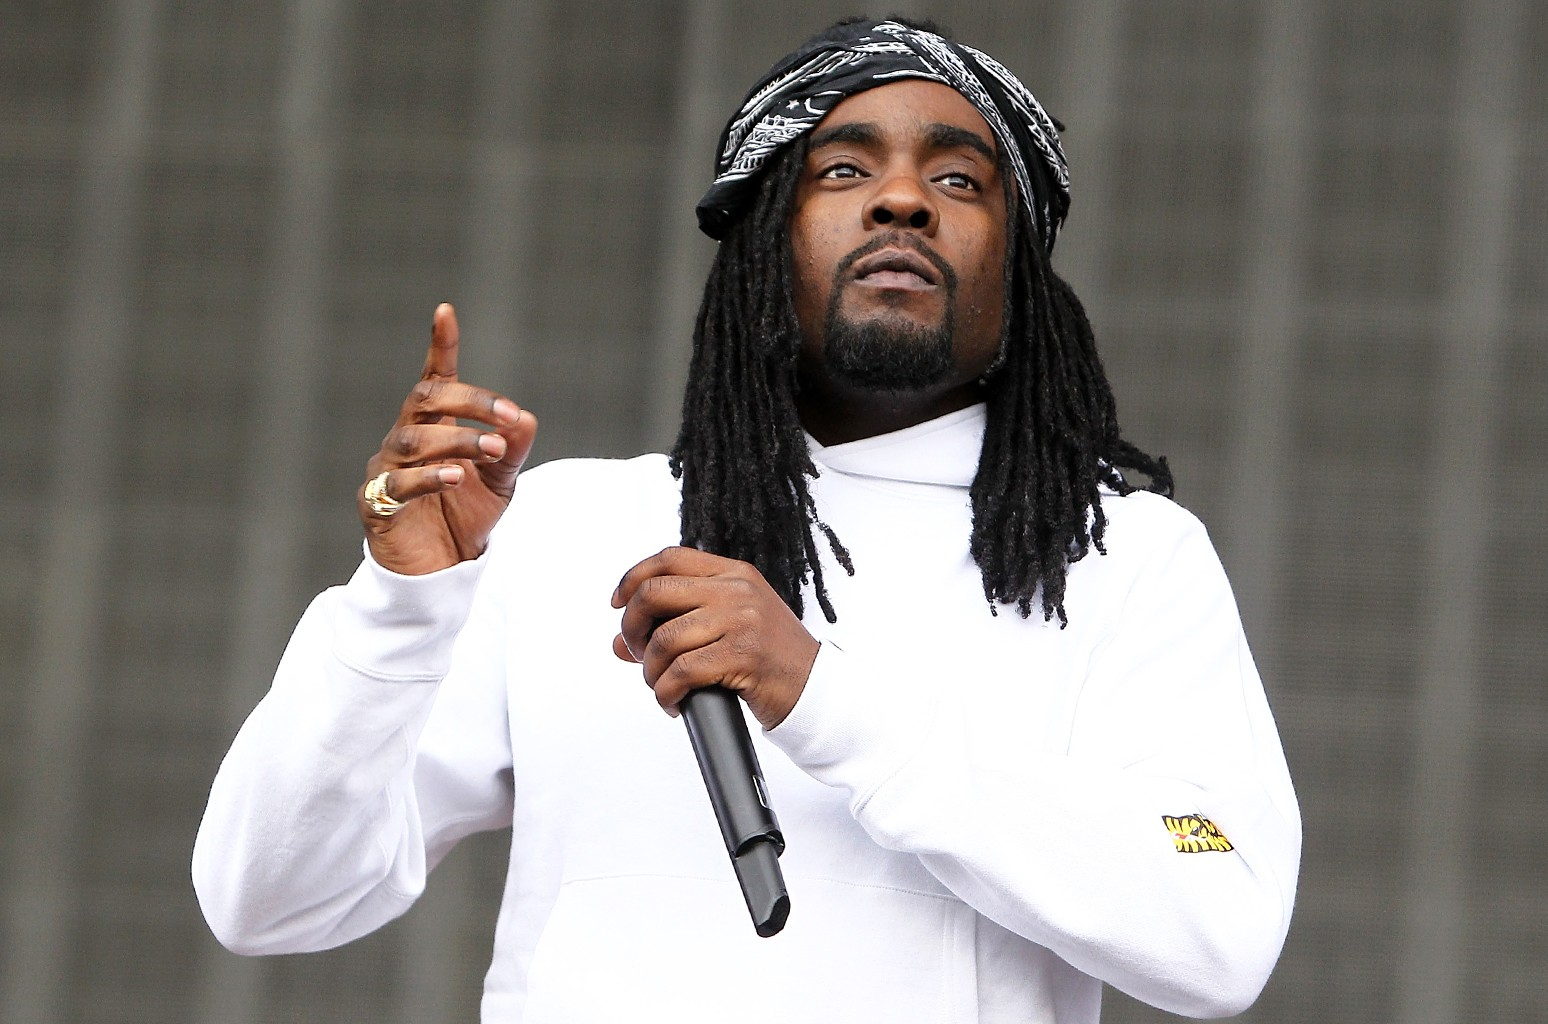 Wale performs at West Potomac Park on Sept. 26, 2015 in Washington, DC.